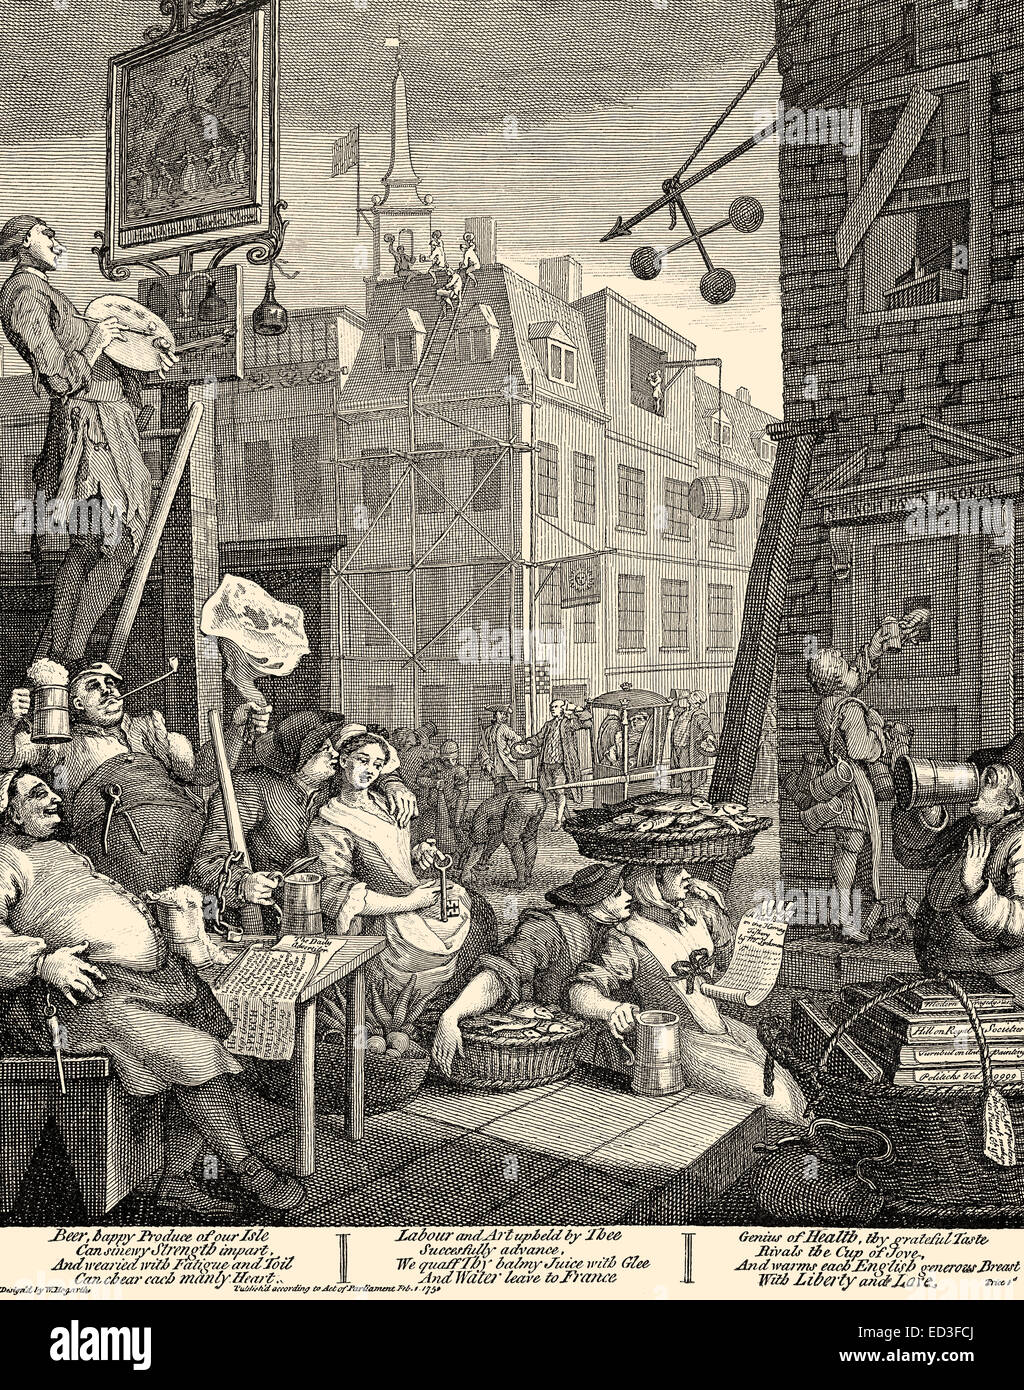 Beer Lane, a caricature,  by William Hogarth, 1697 - 1764 Stock Photo